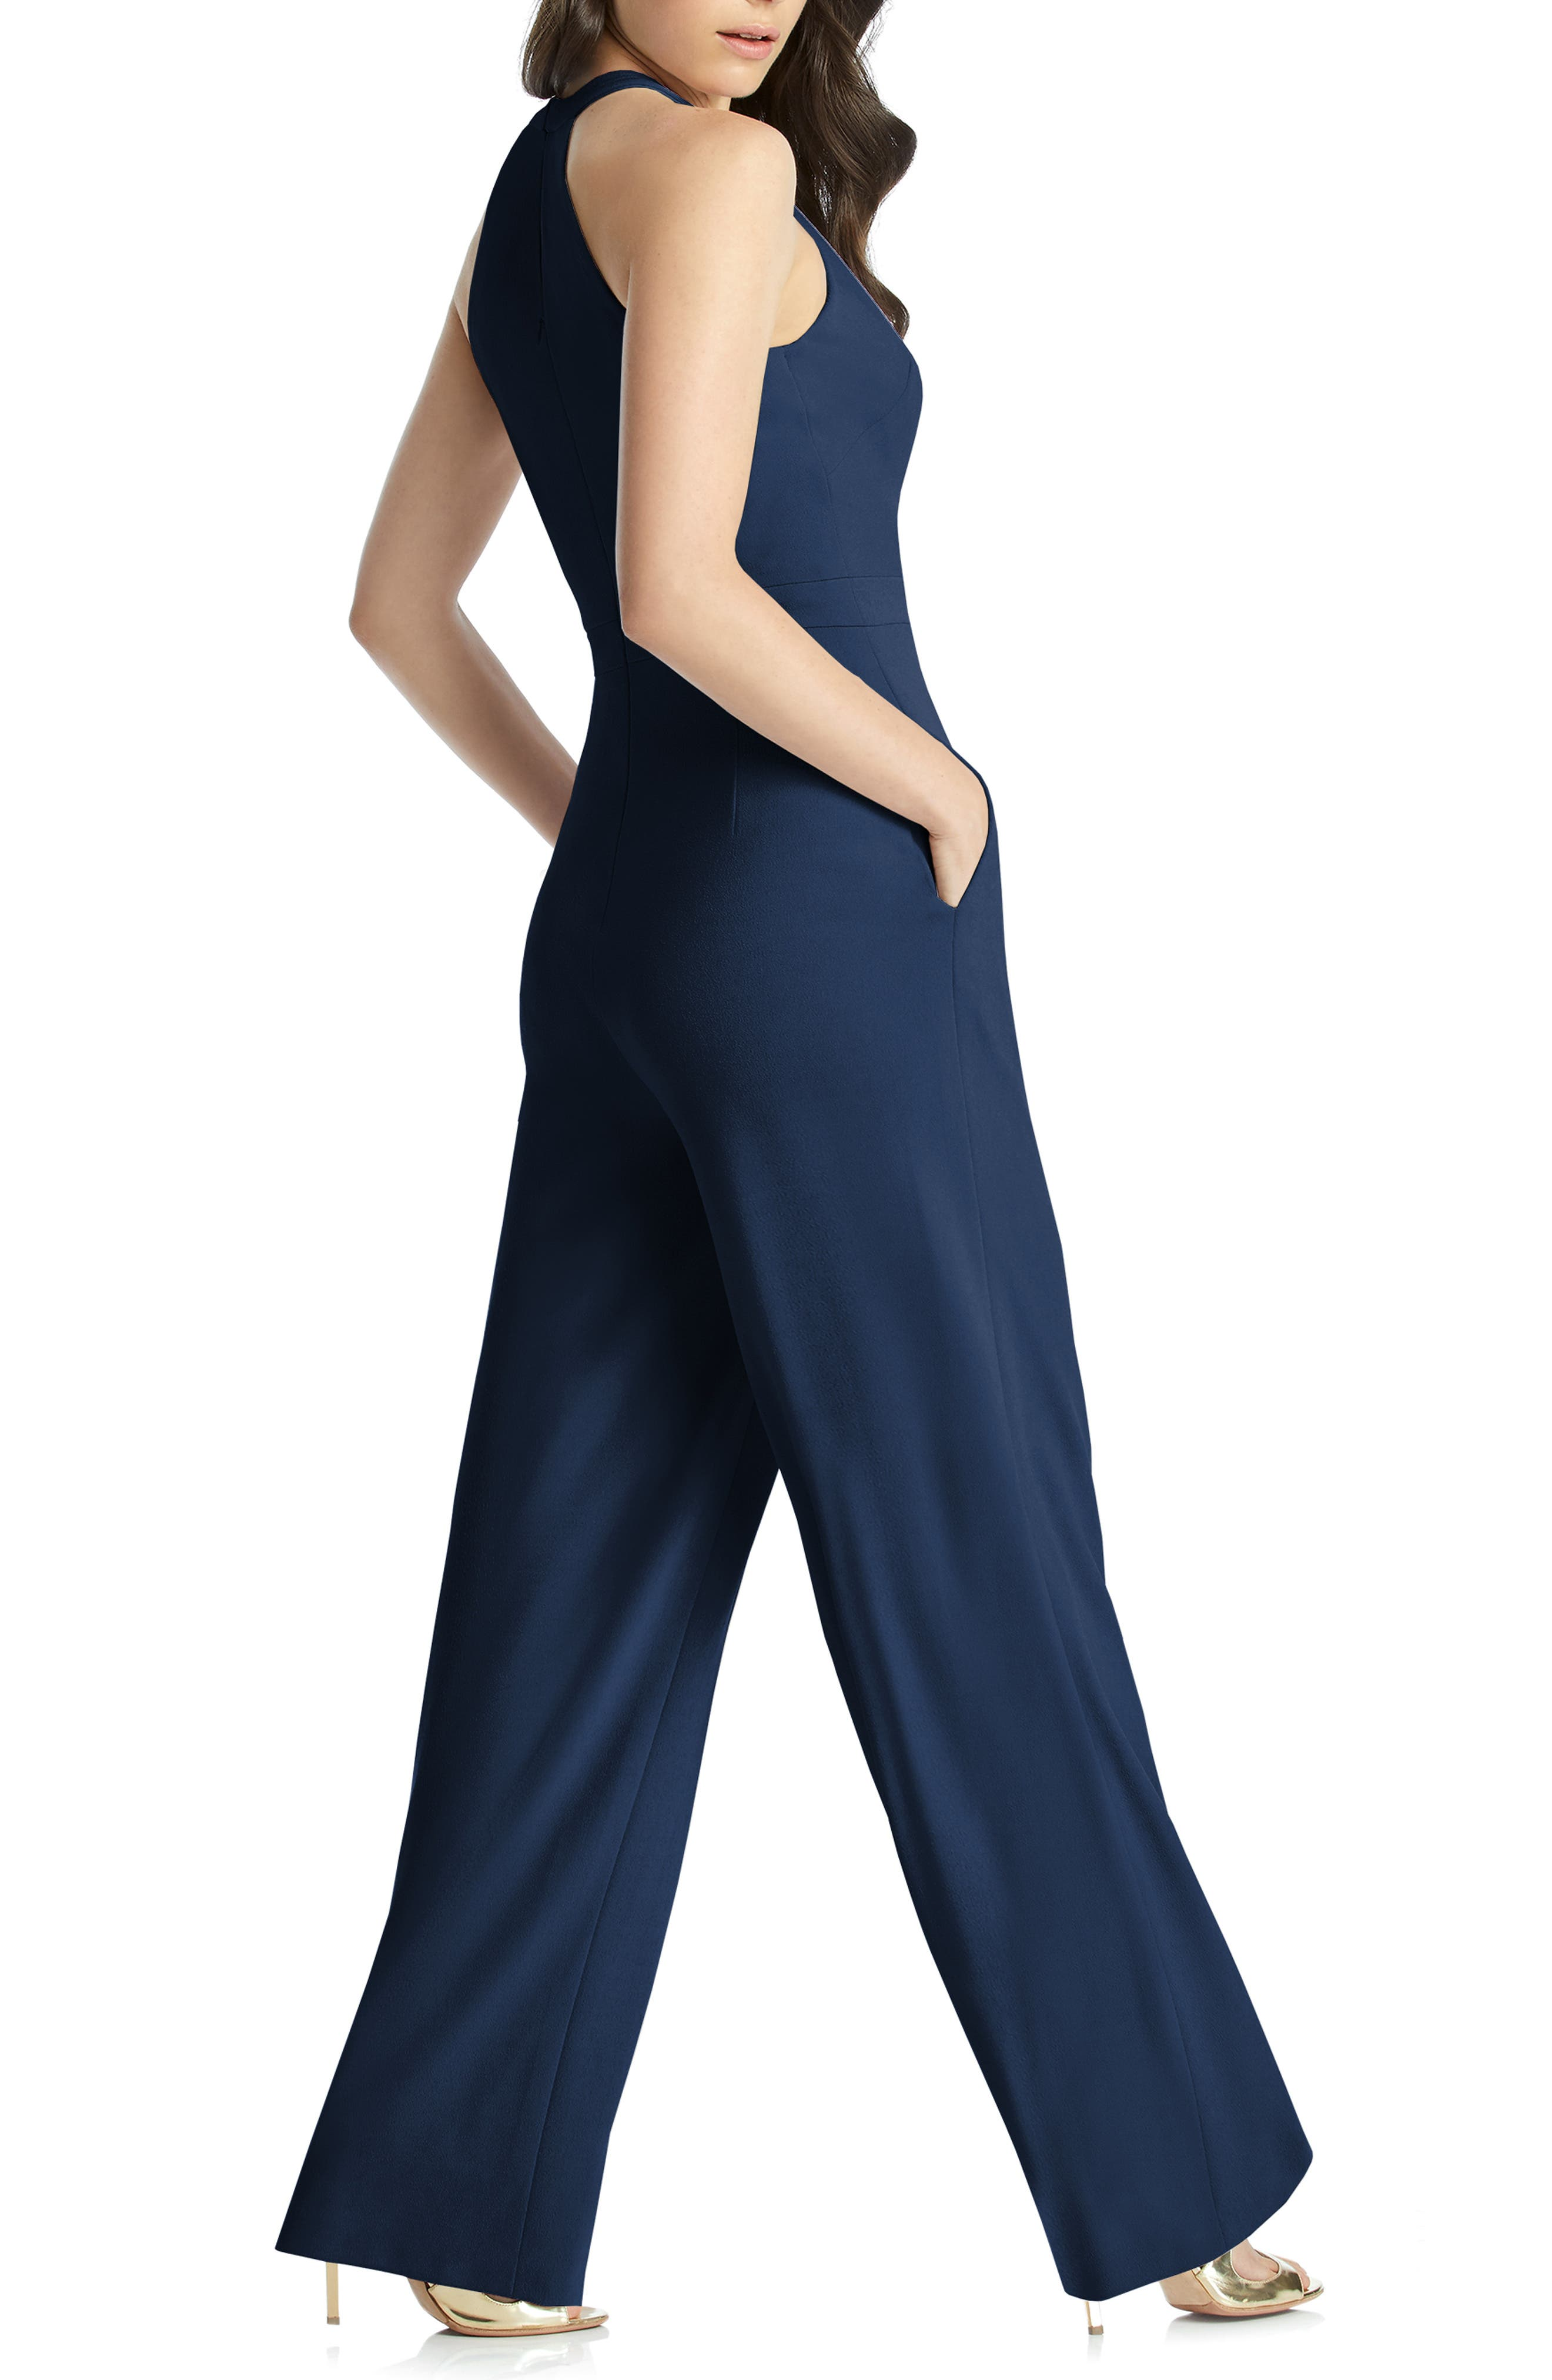 DESSY COLLECTION, Allison Stretch Crepe Jumpsuit, Alternate thumbnail 2, color, MIDNIGHT